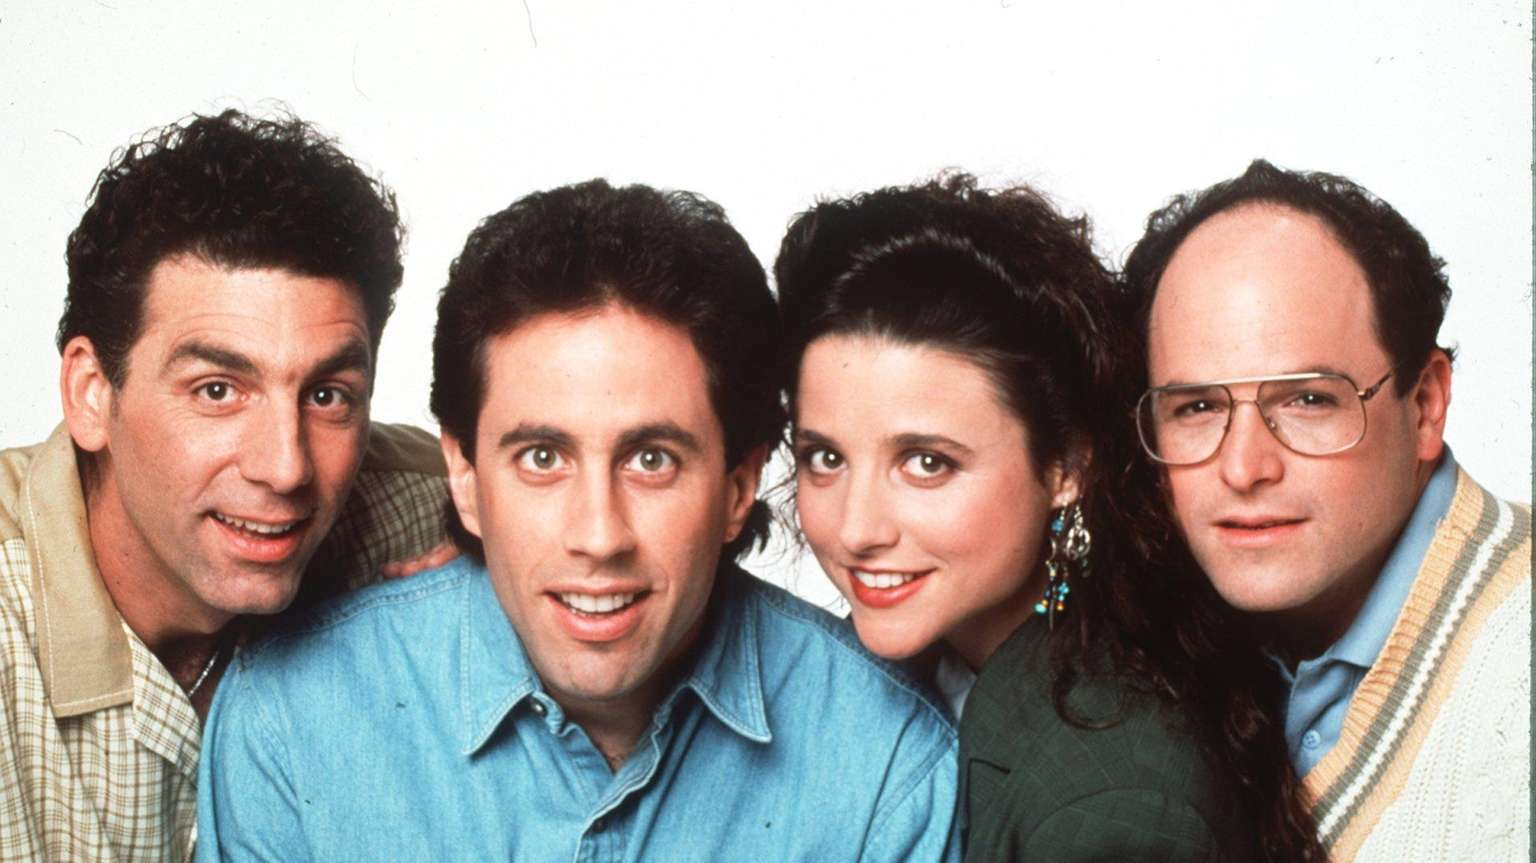 'Seinfeld' in The Hamptons